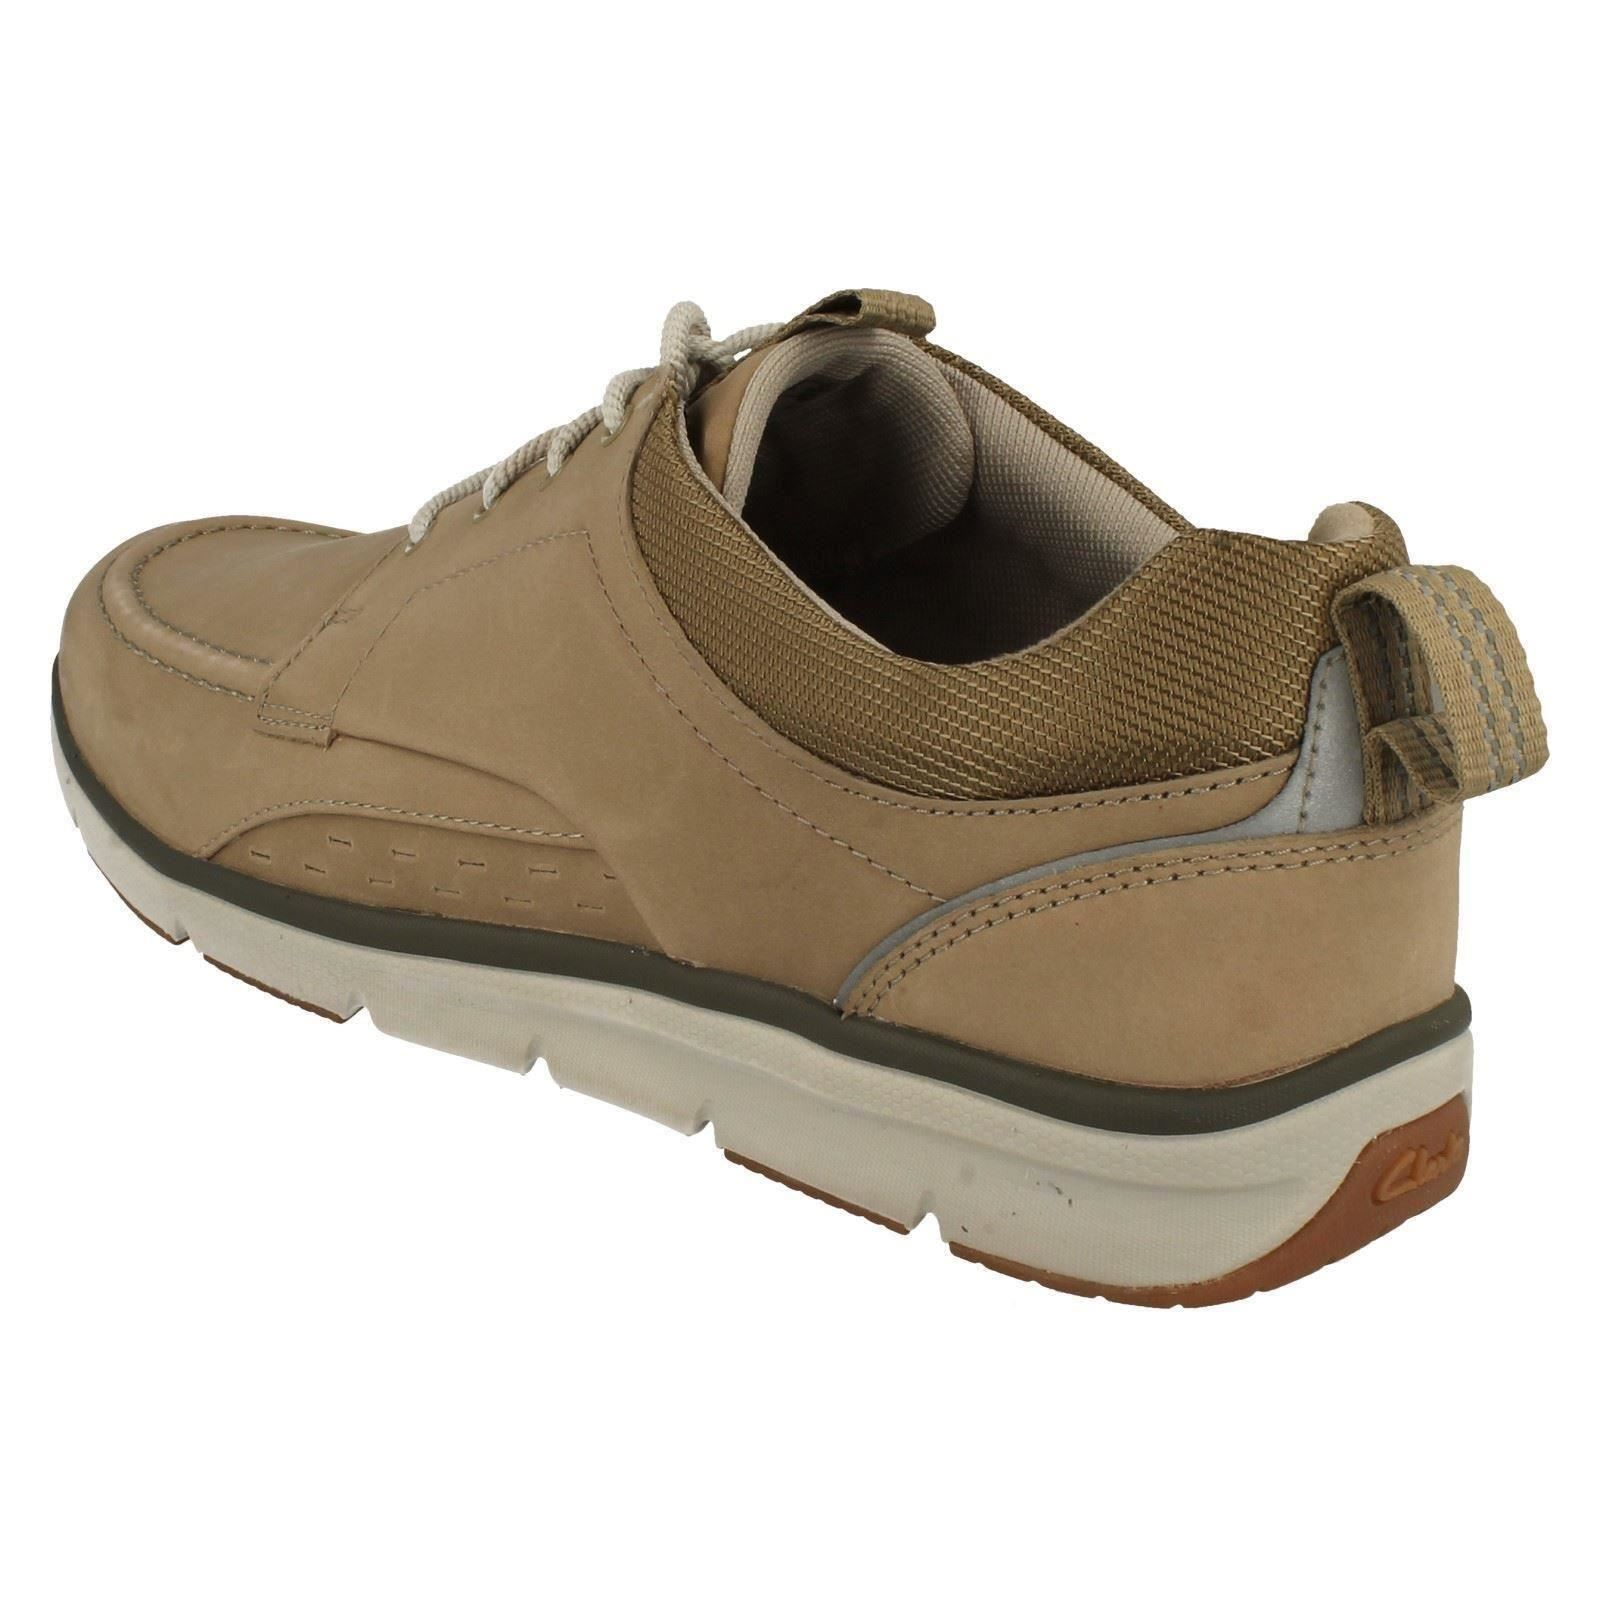 Shoes Orson Up Sand beige Lace Mens Casual Clarks Bay H4Rqwg6SxW